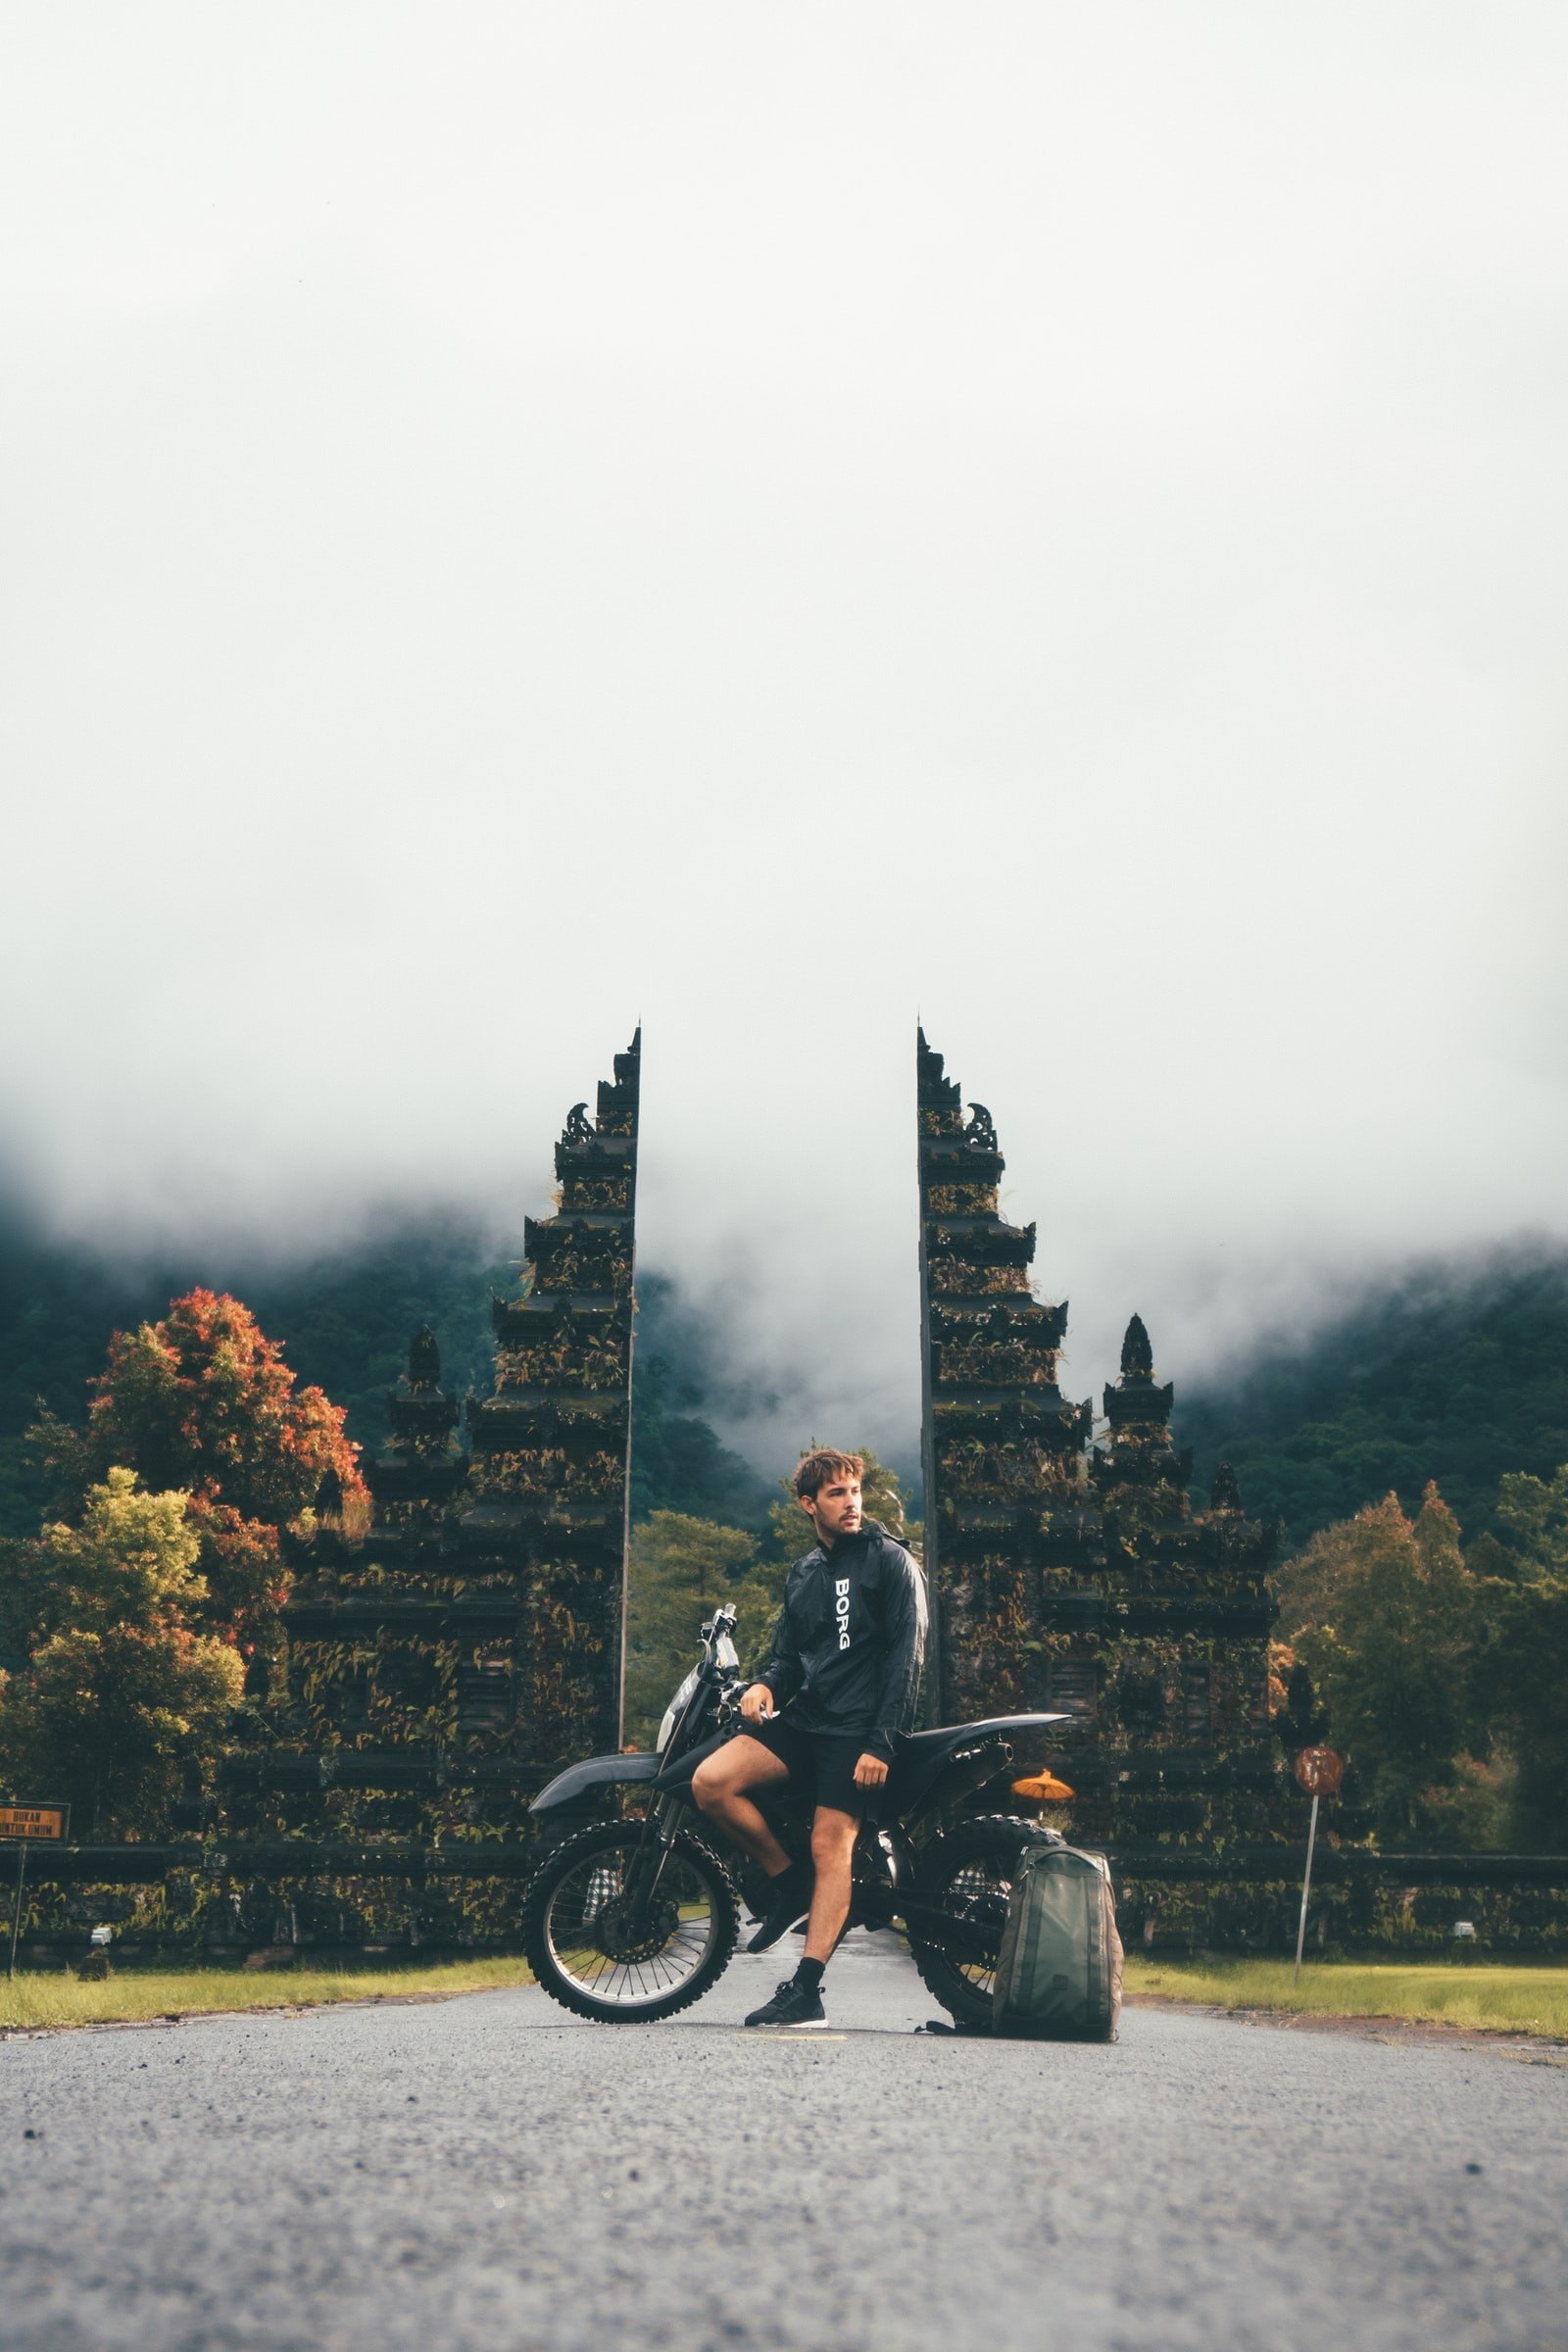 """Sony a6500 sample photo. """"Man sitting on dirtbike"""" photography"""